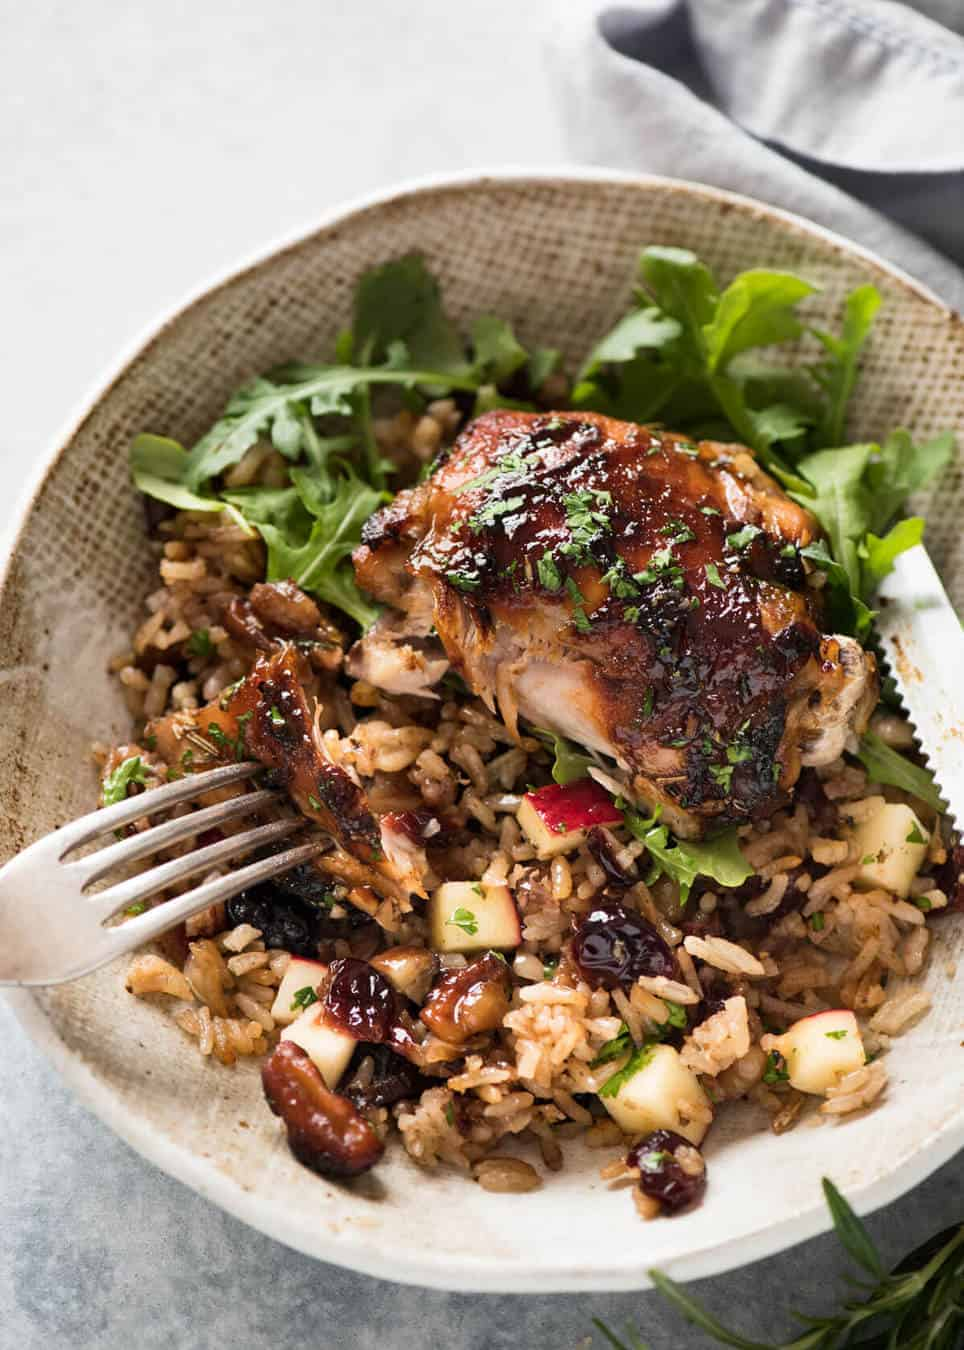 A flavour loaded one-pan, quick midweek dinner - Baked Chicken and Rice Pilaf with Cranberries, Walnuts and Apple. The smell when this is cooking is amazing! www.recipetineats.com